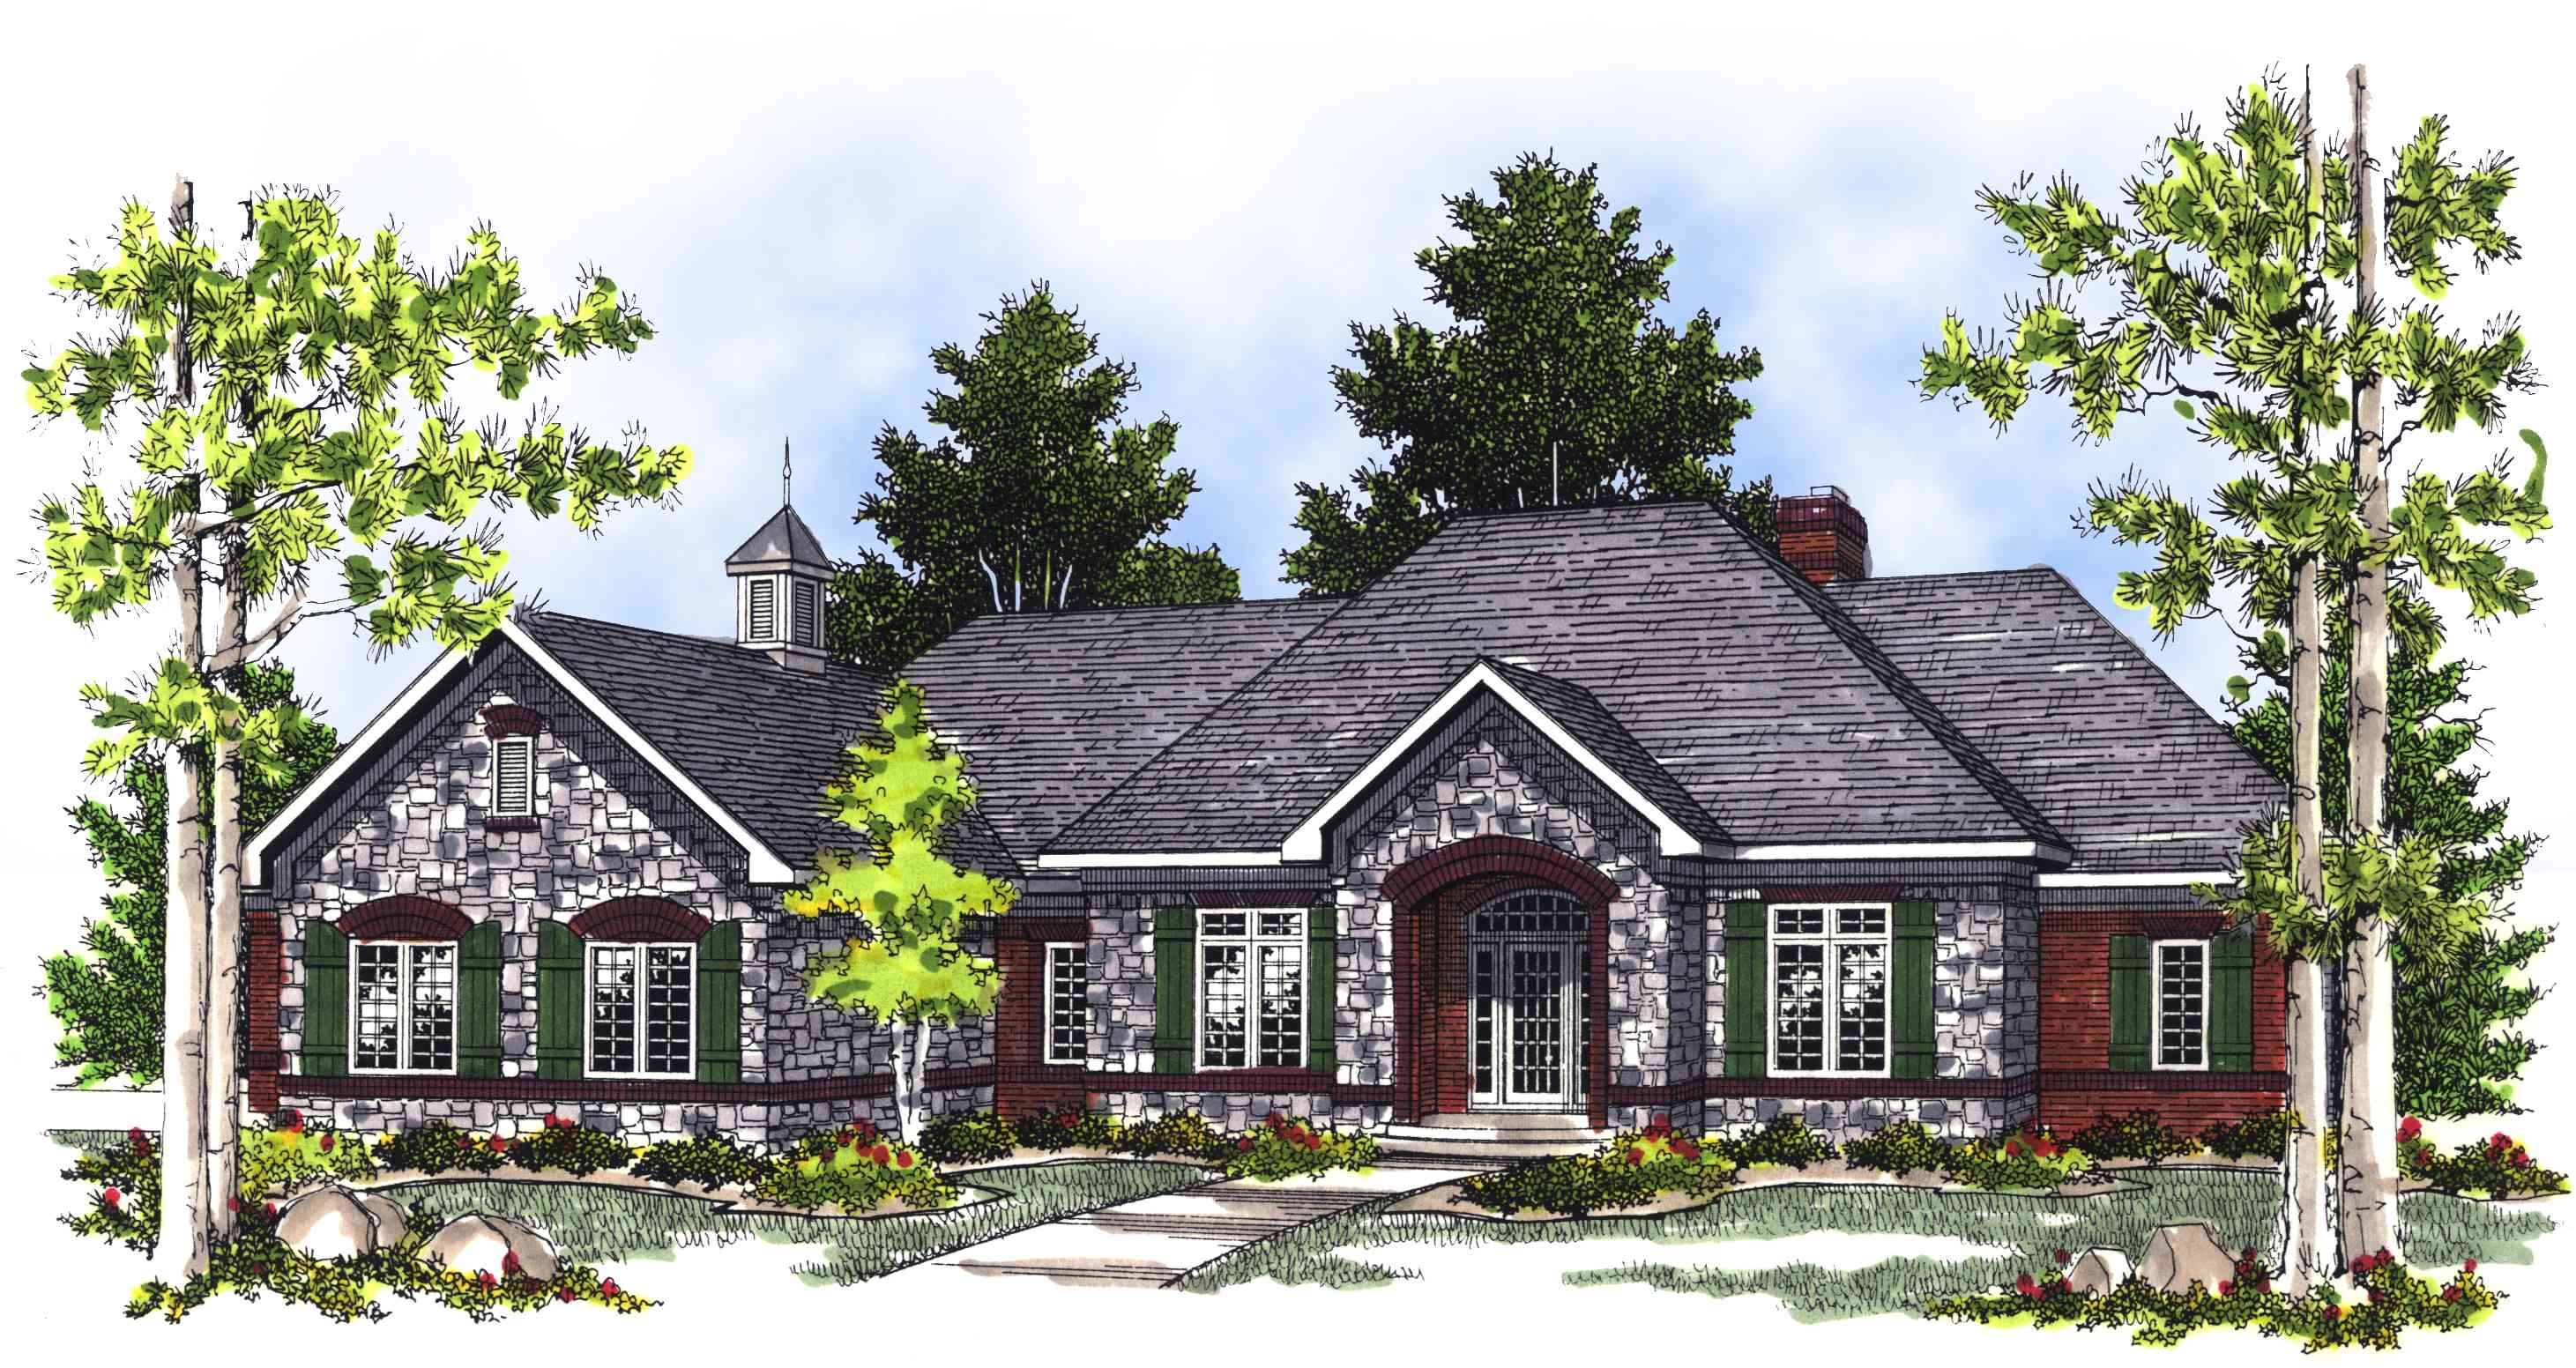 2 bedroom french country house plan 89409ah for French country home designs